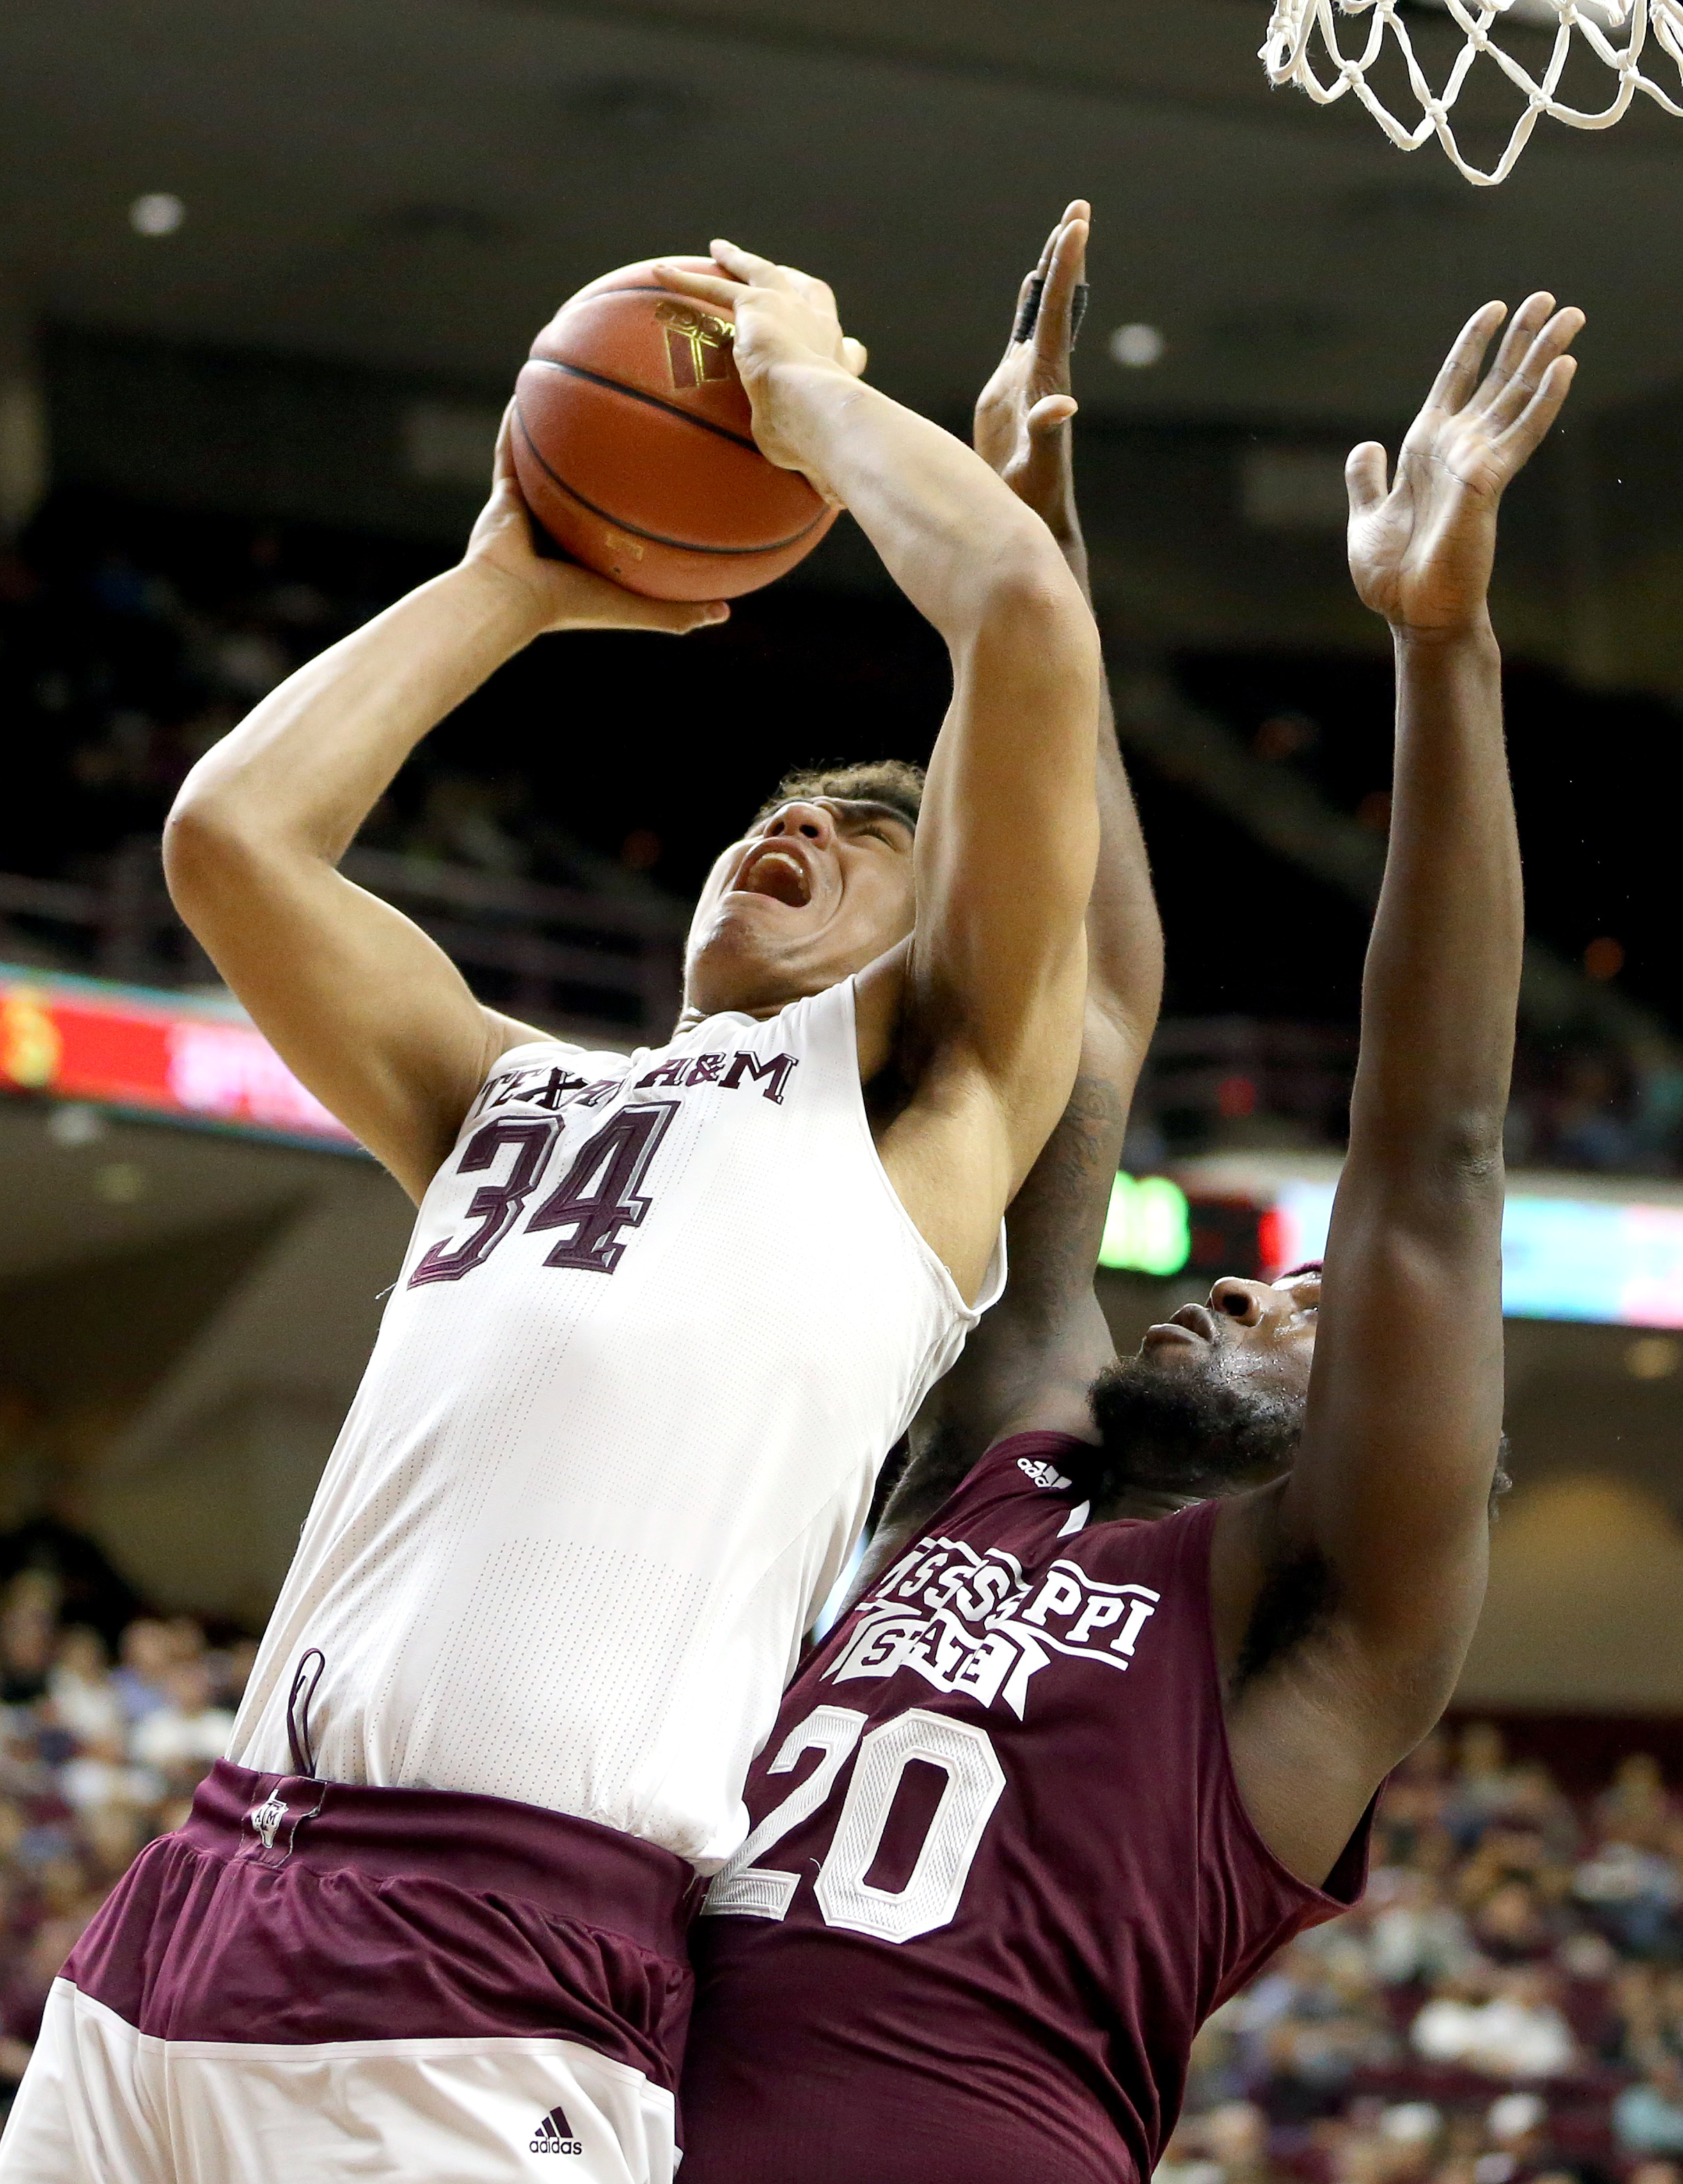 Texas A&M's Tyler Davis (34) makes a basket as Mississippi State's Gavin Ware (20) during the first half of an NCAA college basketball game, Wednesday, Feb. 24, 2016, in College Station, Texas.  (AP Photo/Sam Craft)